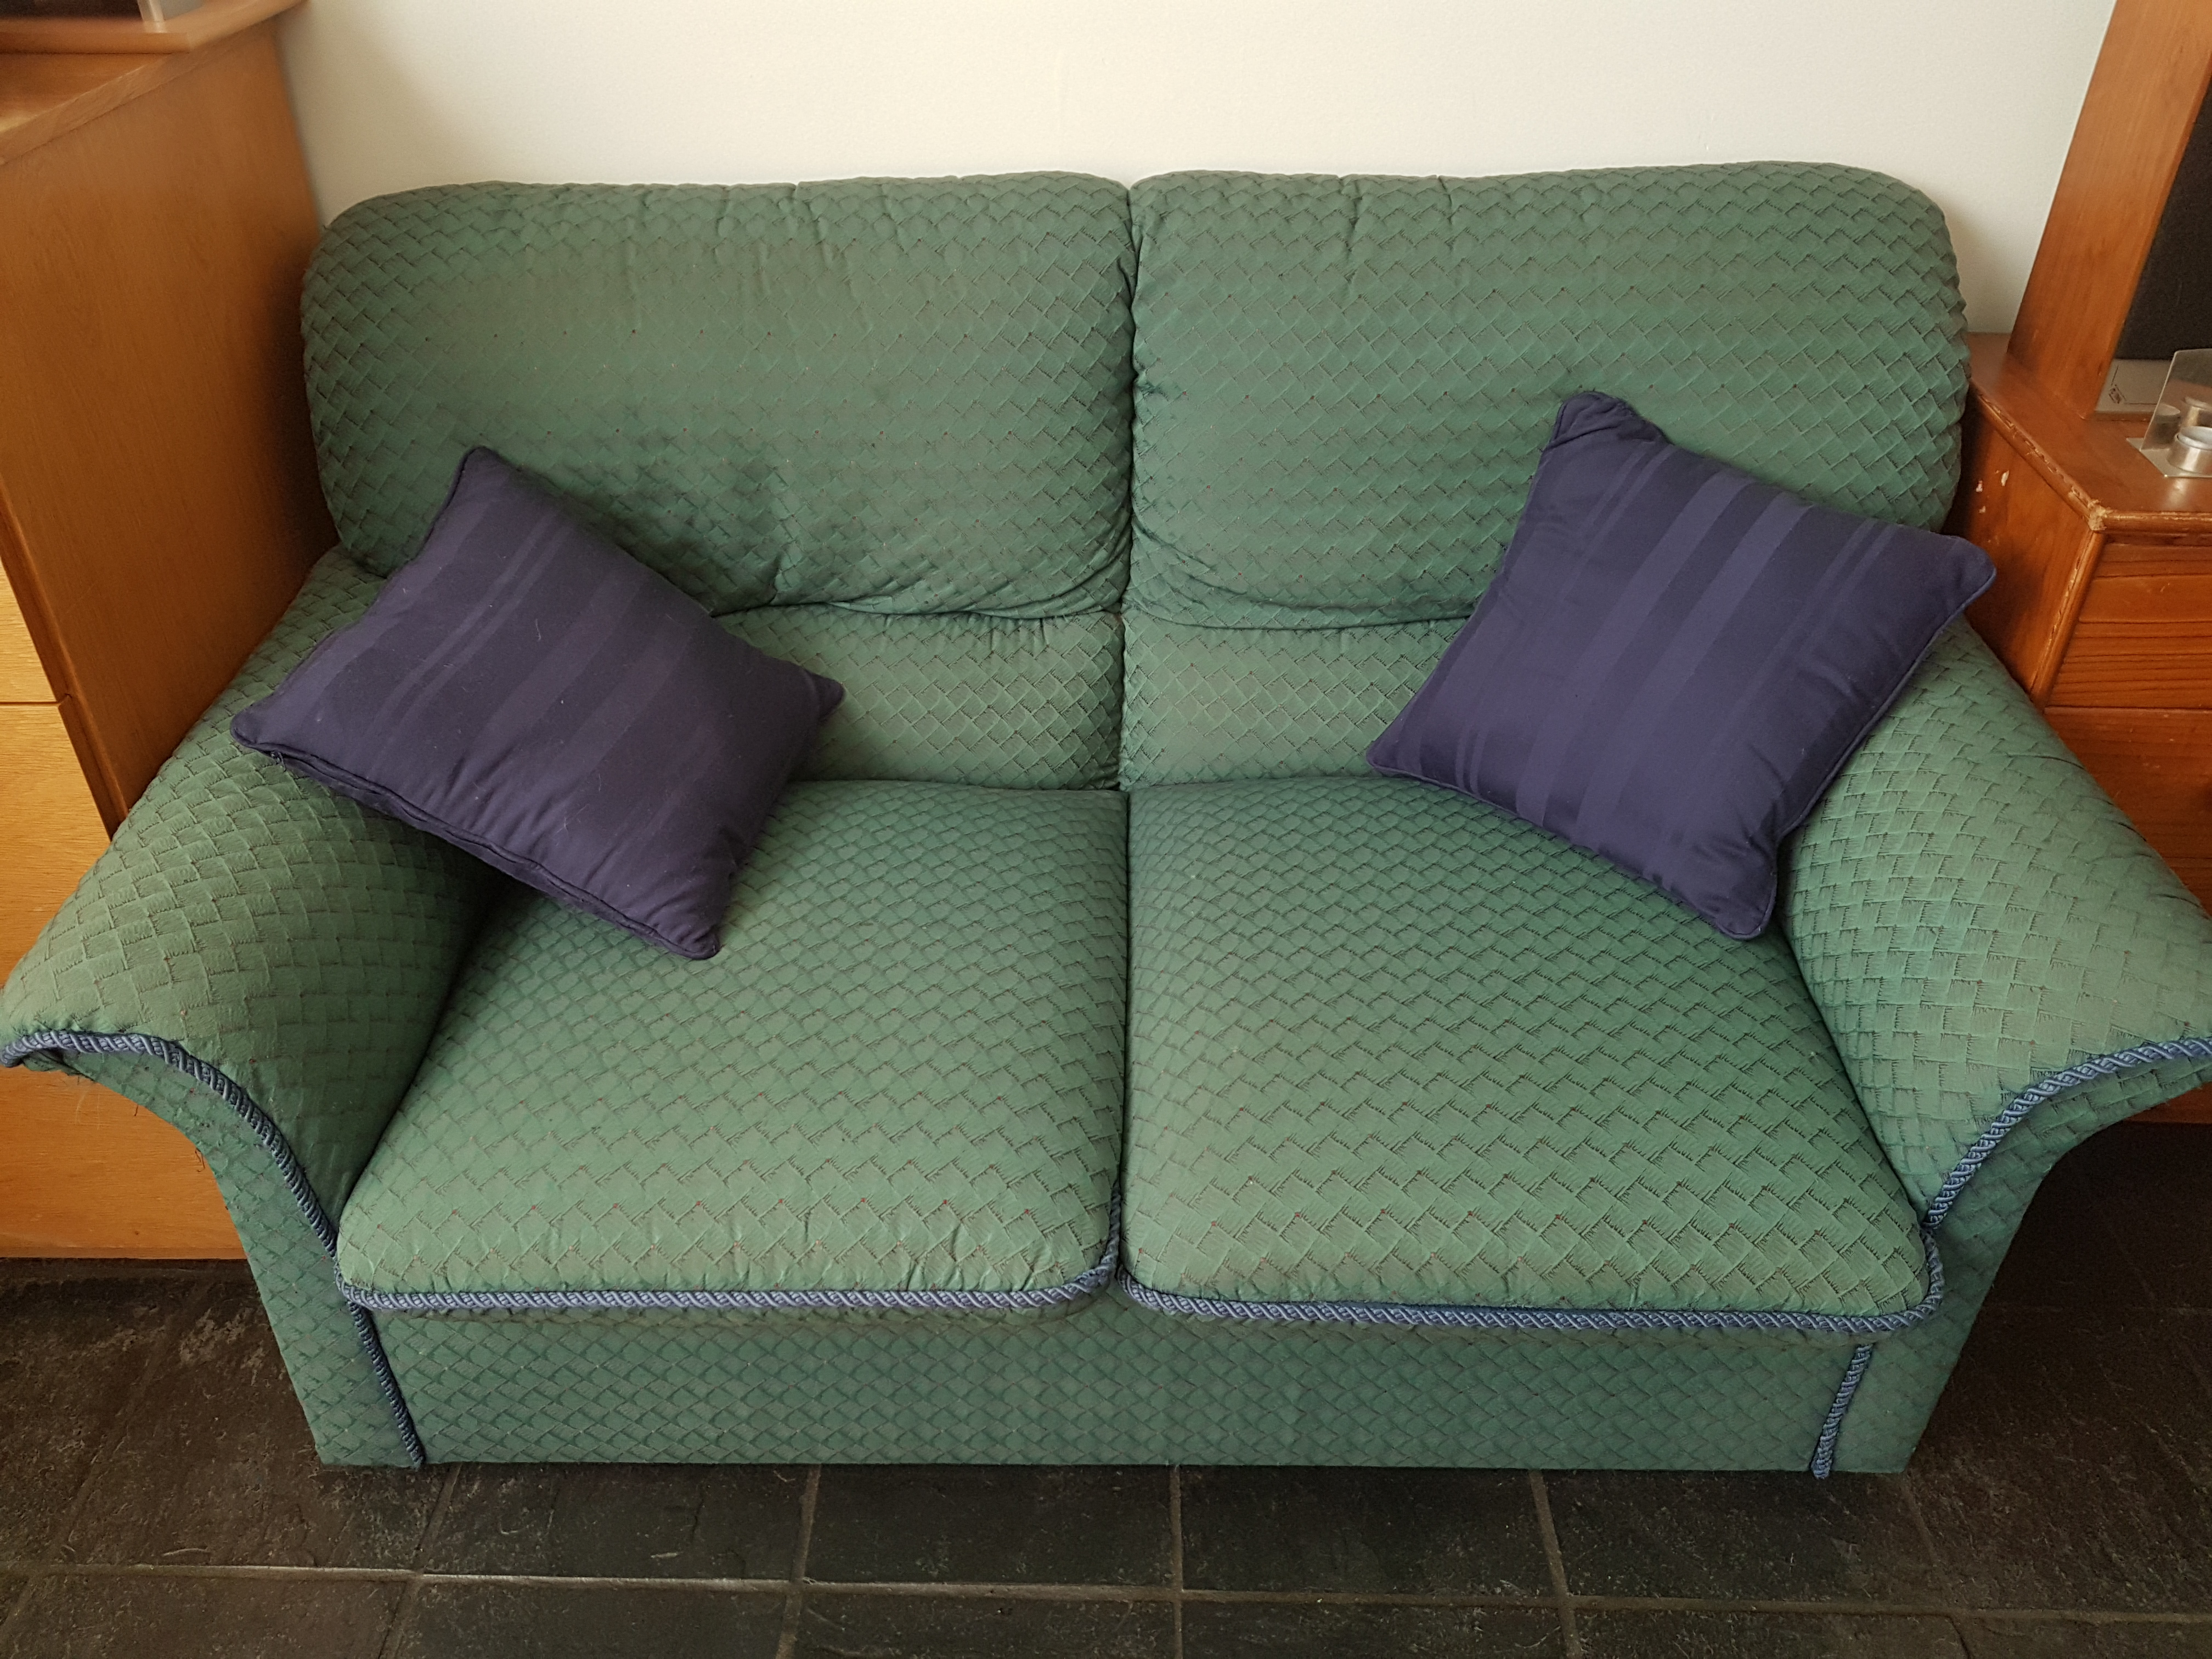 Emerald green couches